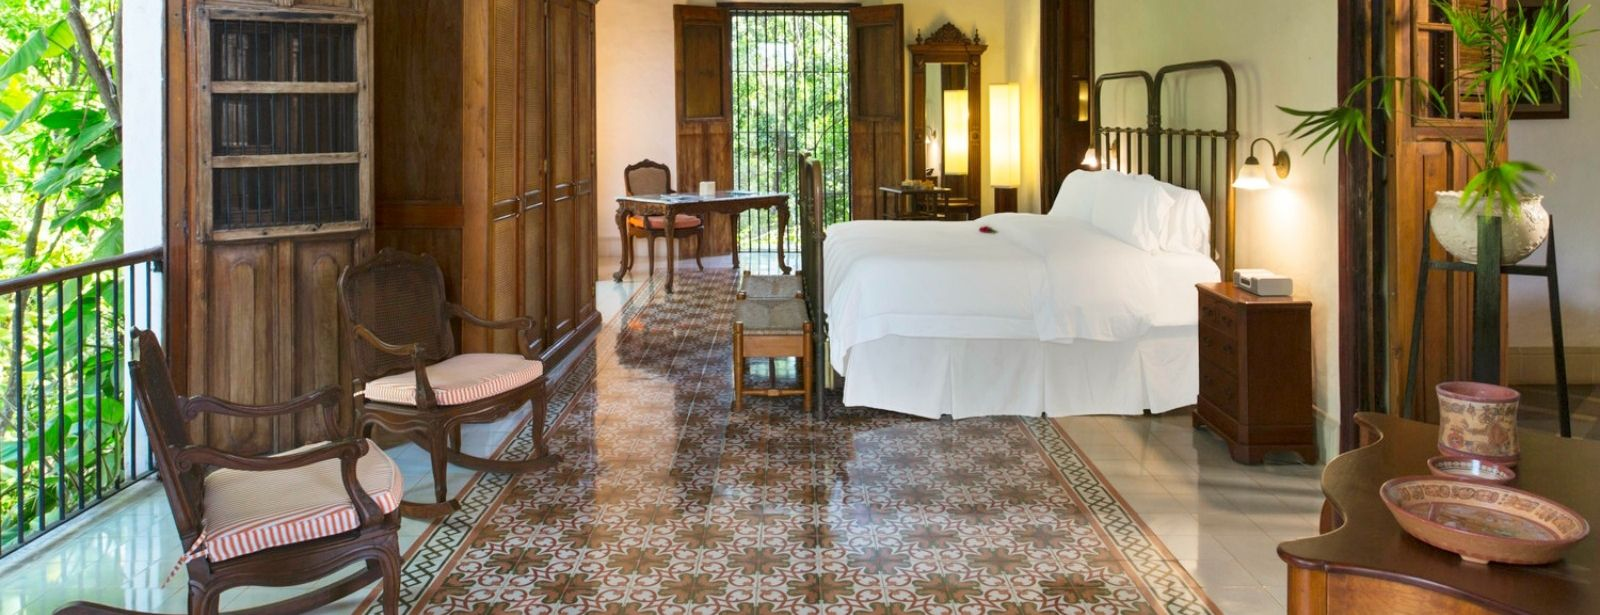 Hacienda Temozon - Presidential Suite